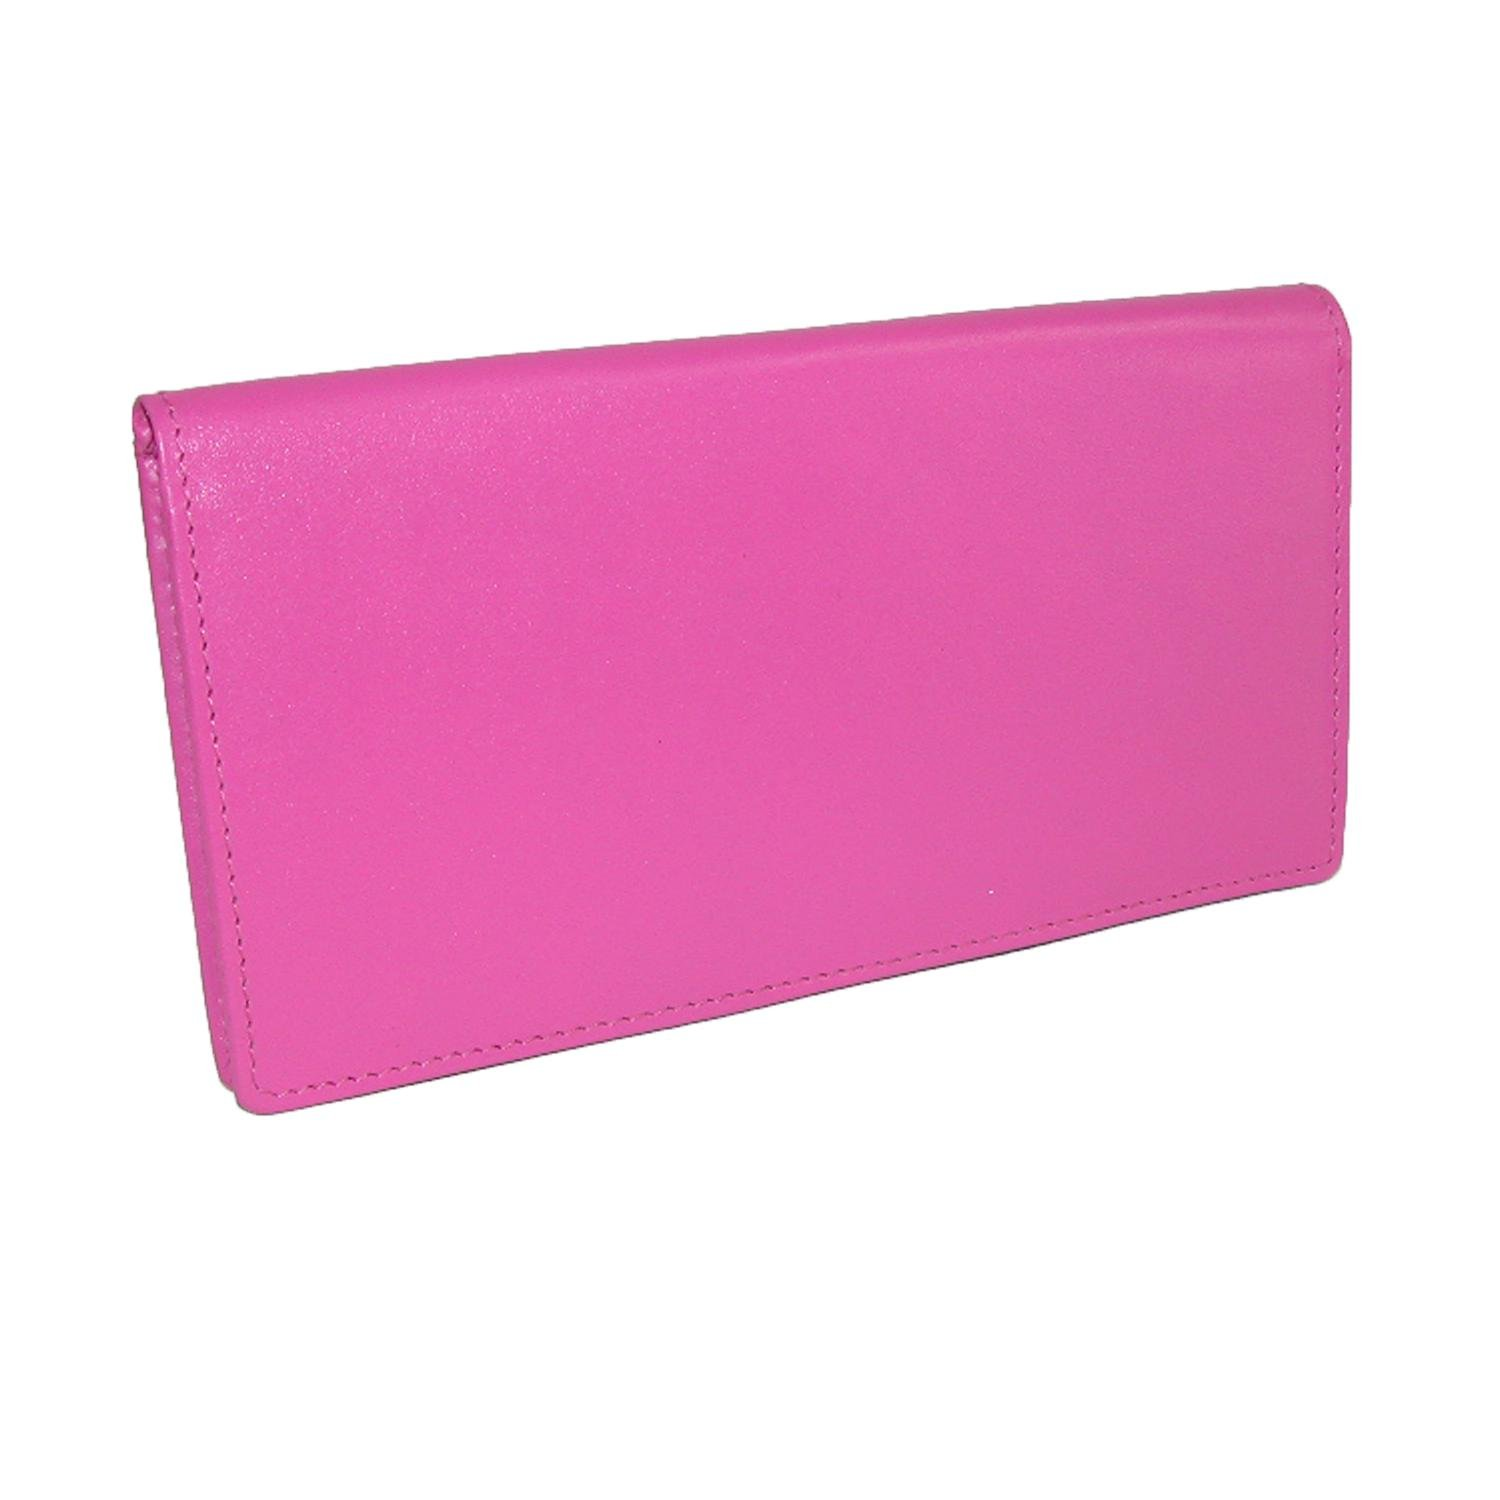 CTM Women's Leather Basic Checkbook Cover in Fashion Colors, Fuchsia